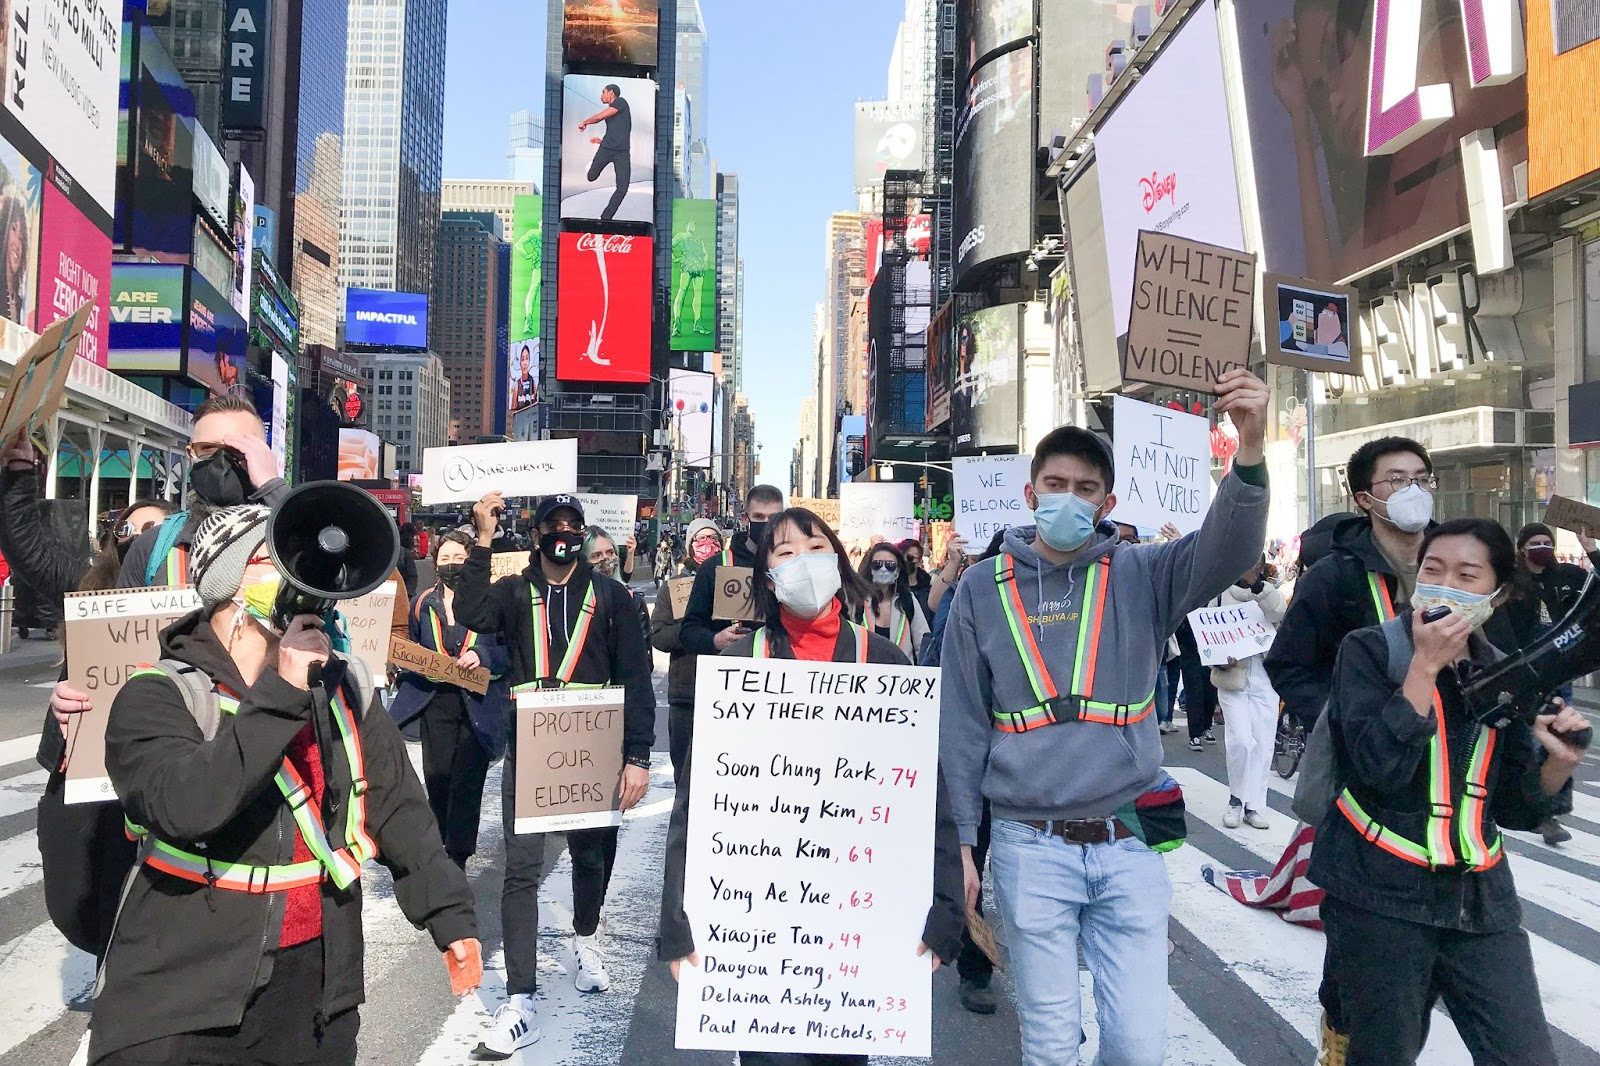 protest against Asian hate